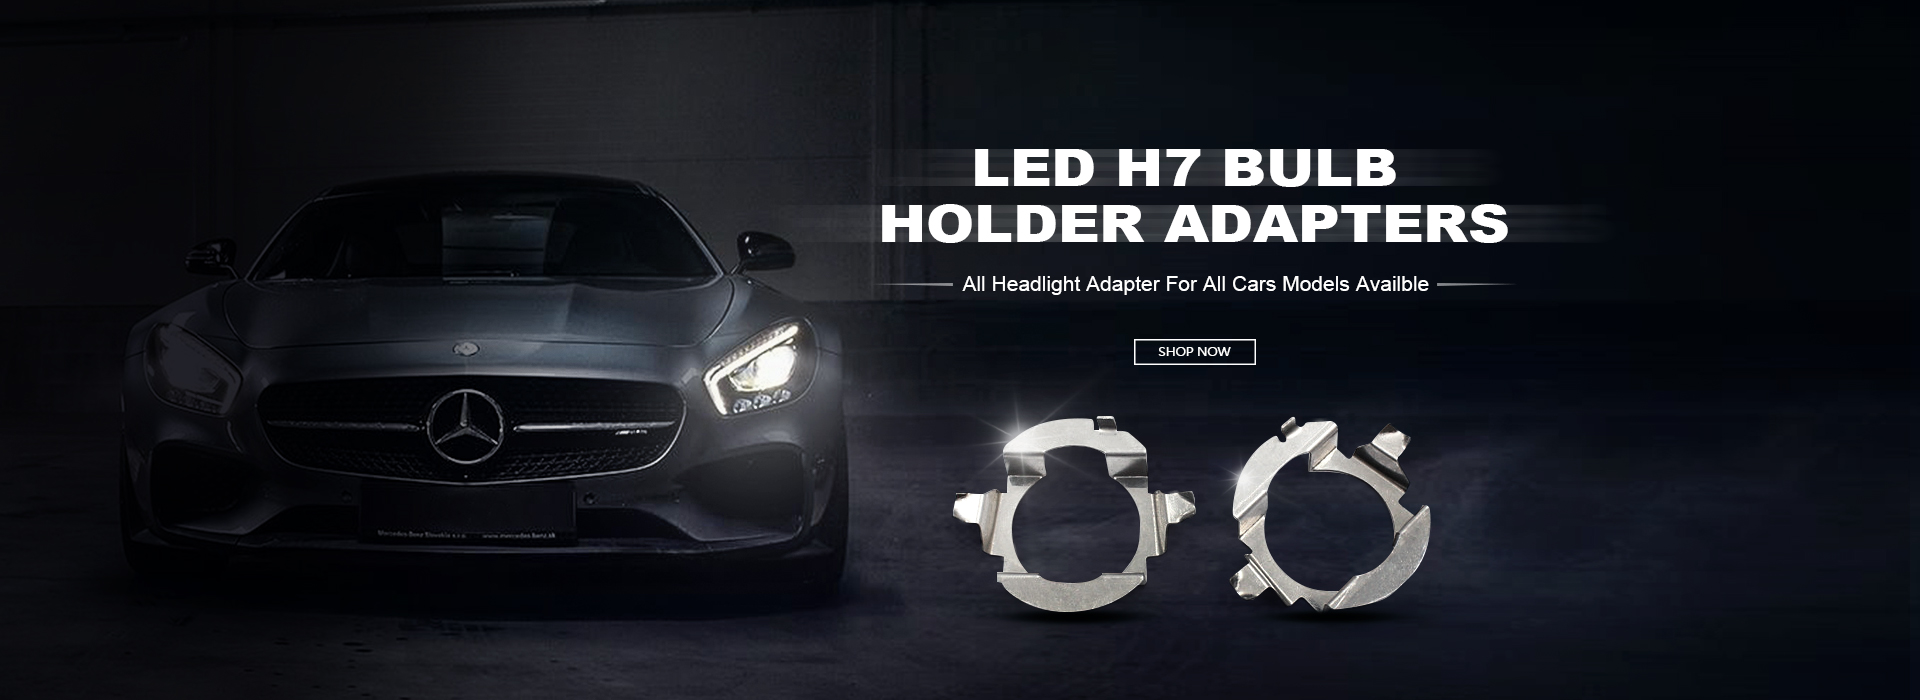 Rockeybright 2017 Store Small Orders Online Hot Selling And Automotive Wiring Harness Mercedes D2s Hid Bulb 4300k 8000k 6000k Xenon Headlight Bulbs With Holder Adapter Socket To Ket